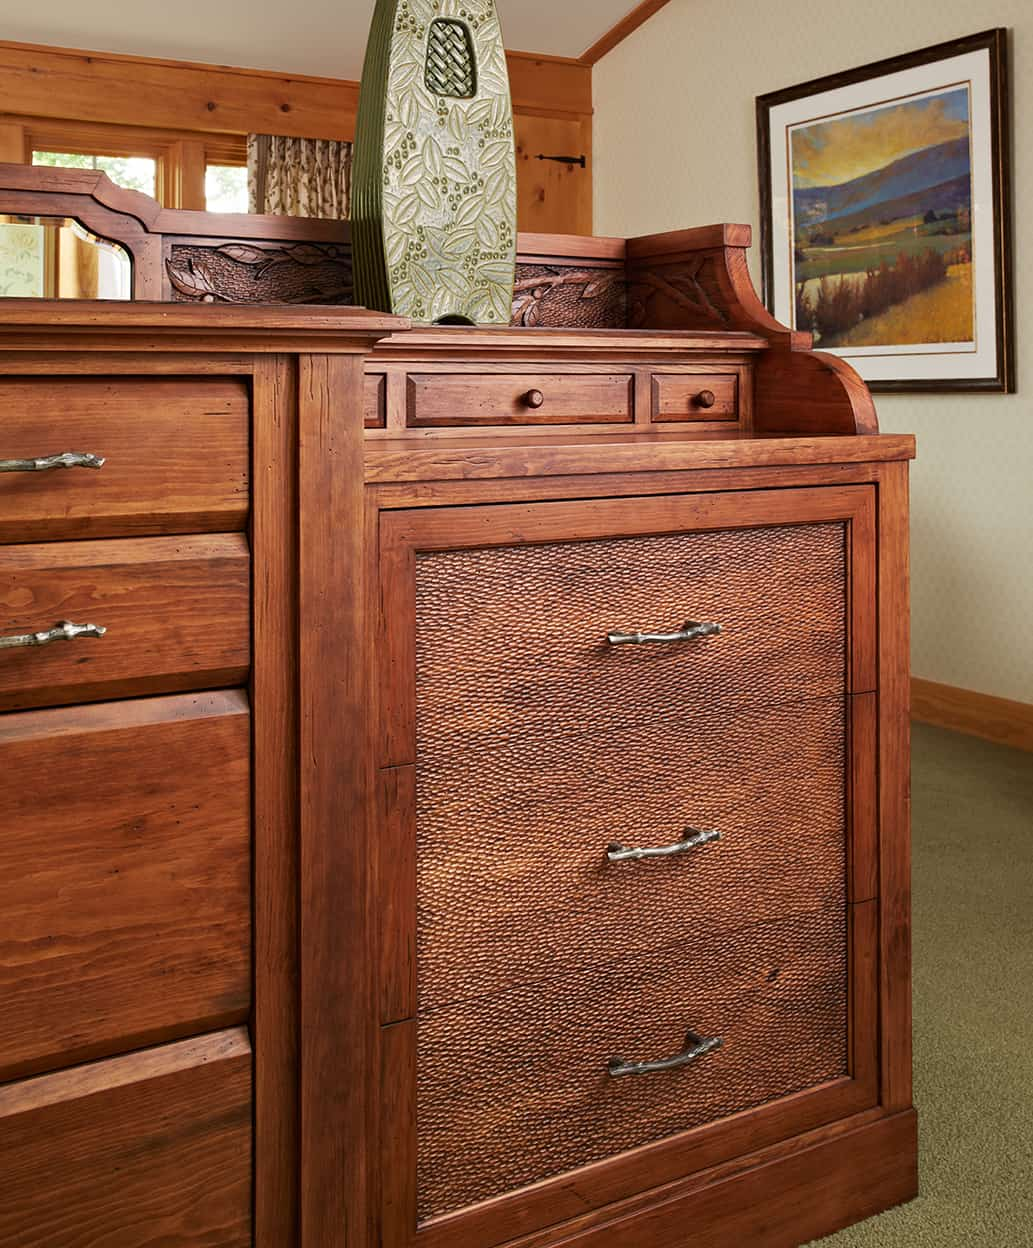 Master bedroom bureau, darker wood with meticulous detail and plenty of drawers with metal twig-shaped pulls